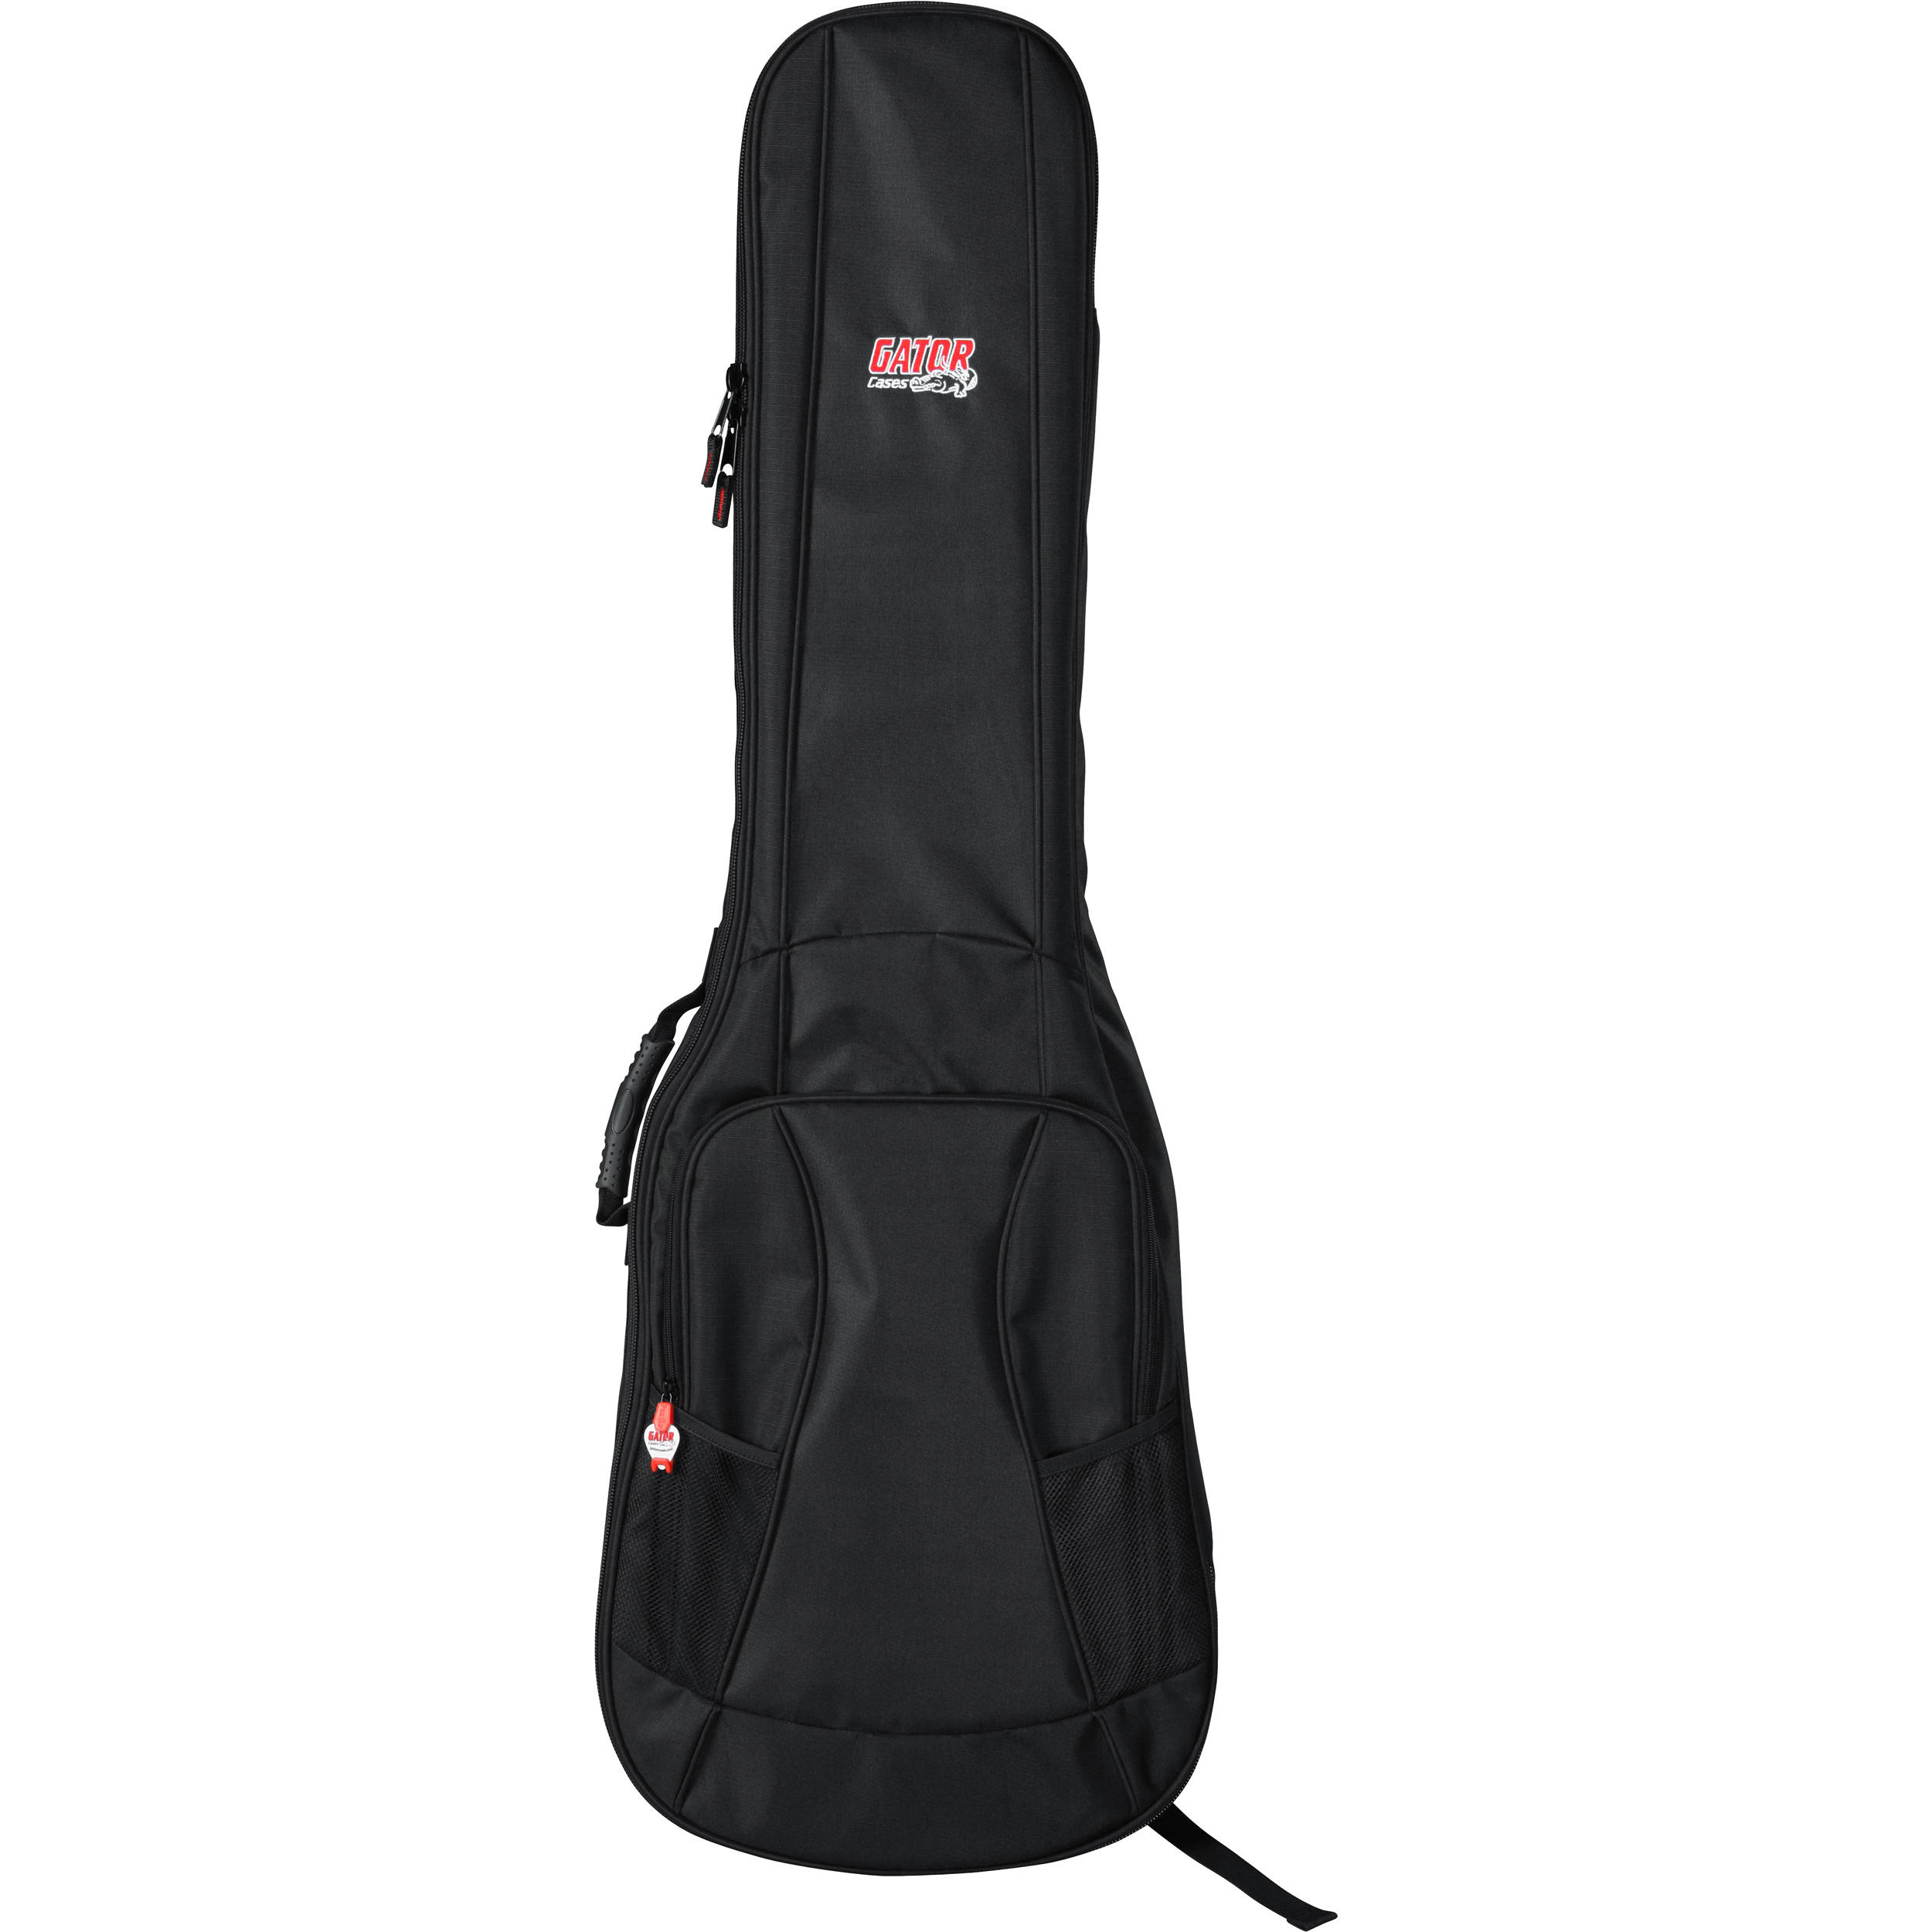 Gator Cases Gb 4g Bass Style Gig Bag For Guitars